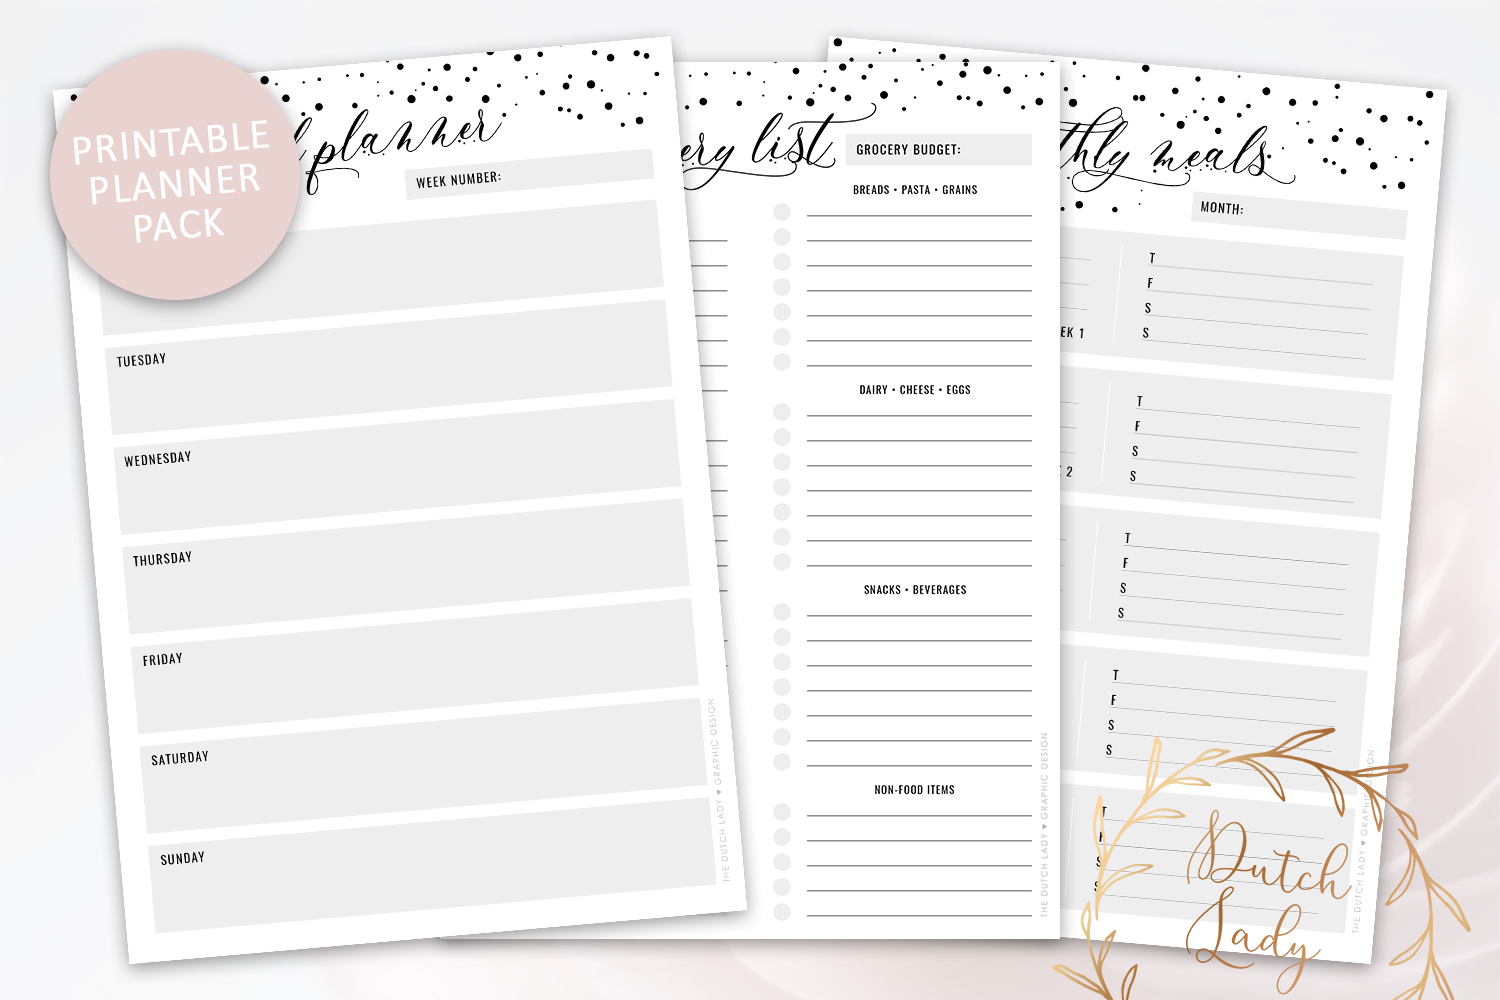 Printable Meal Plan & Grocery List - Planner Pack - Polkadot example image 1